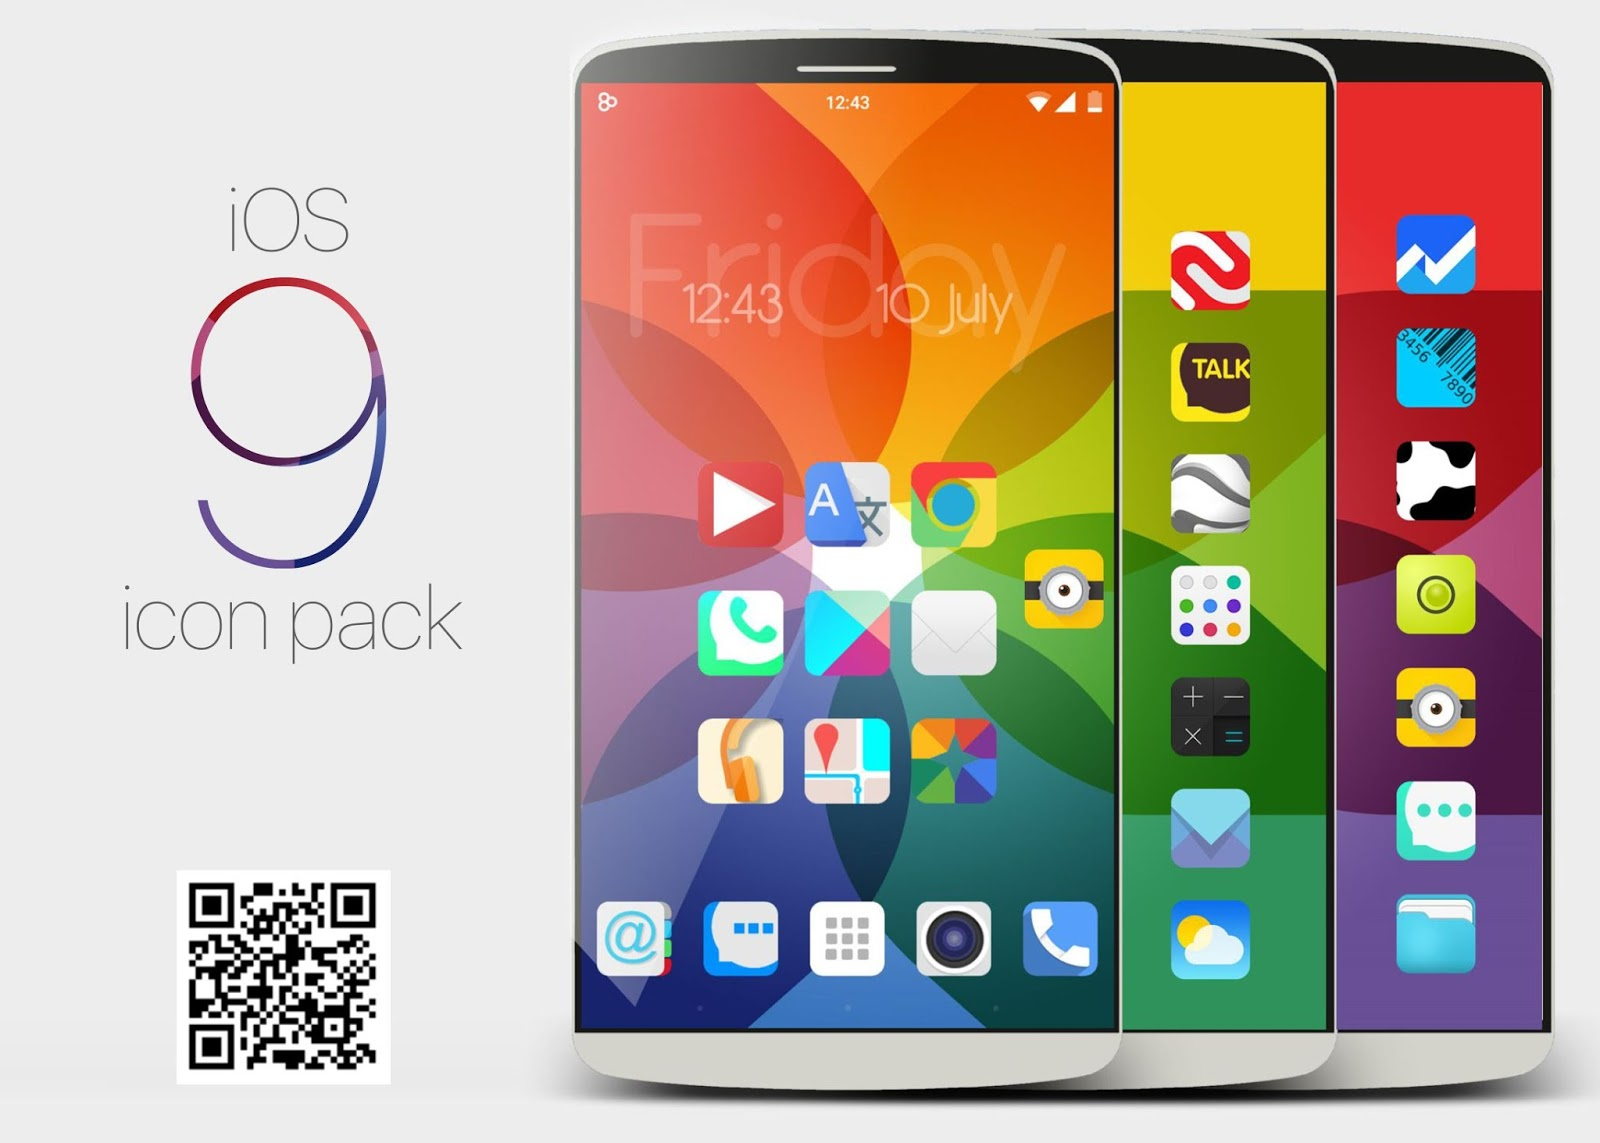 icon pack Android: Iphone ios9 Concept Theme to Android icon